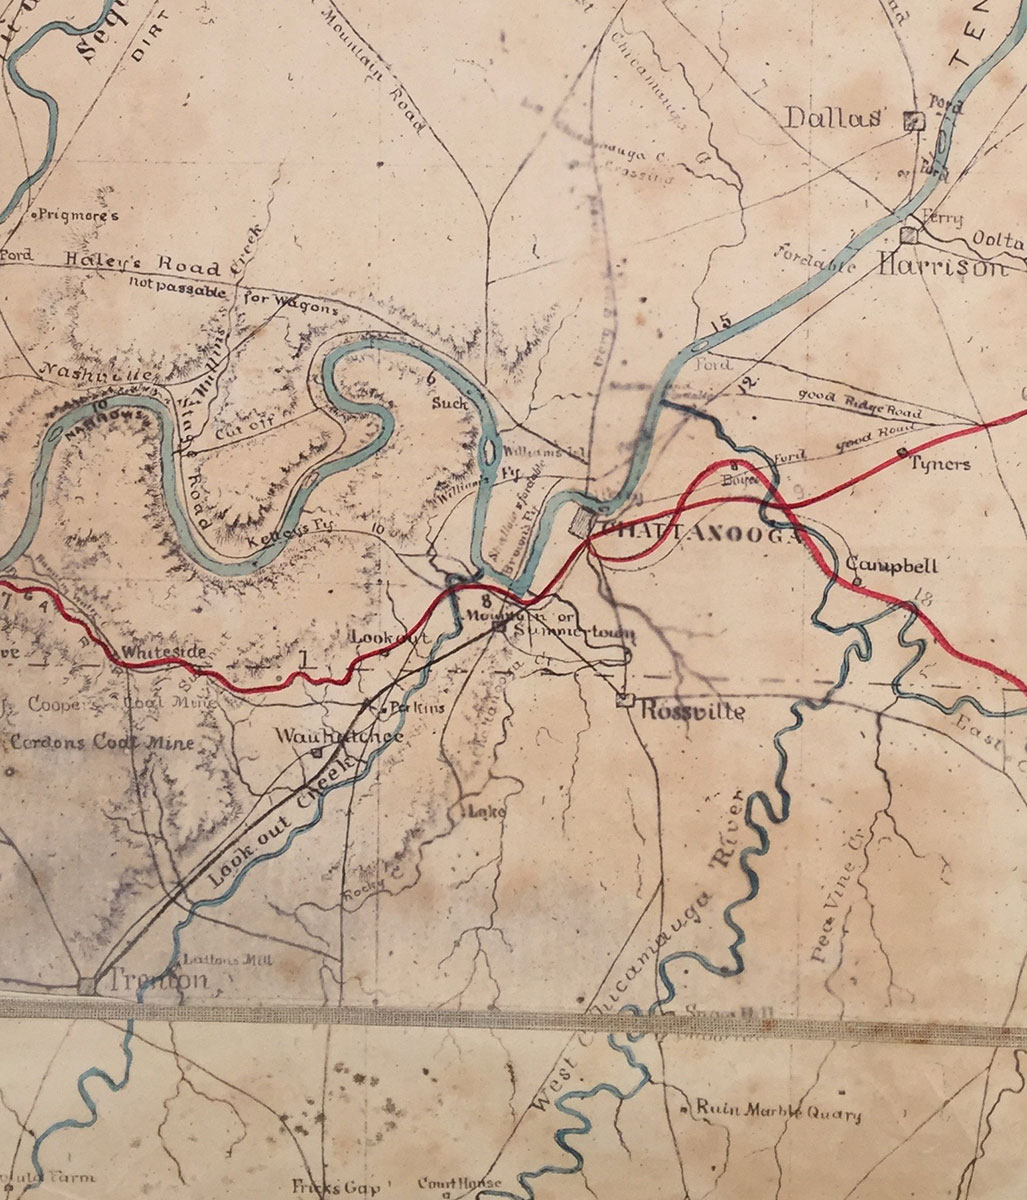 Map of Middle and East Tennessee and Parts of Alabama and